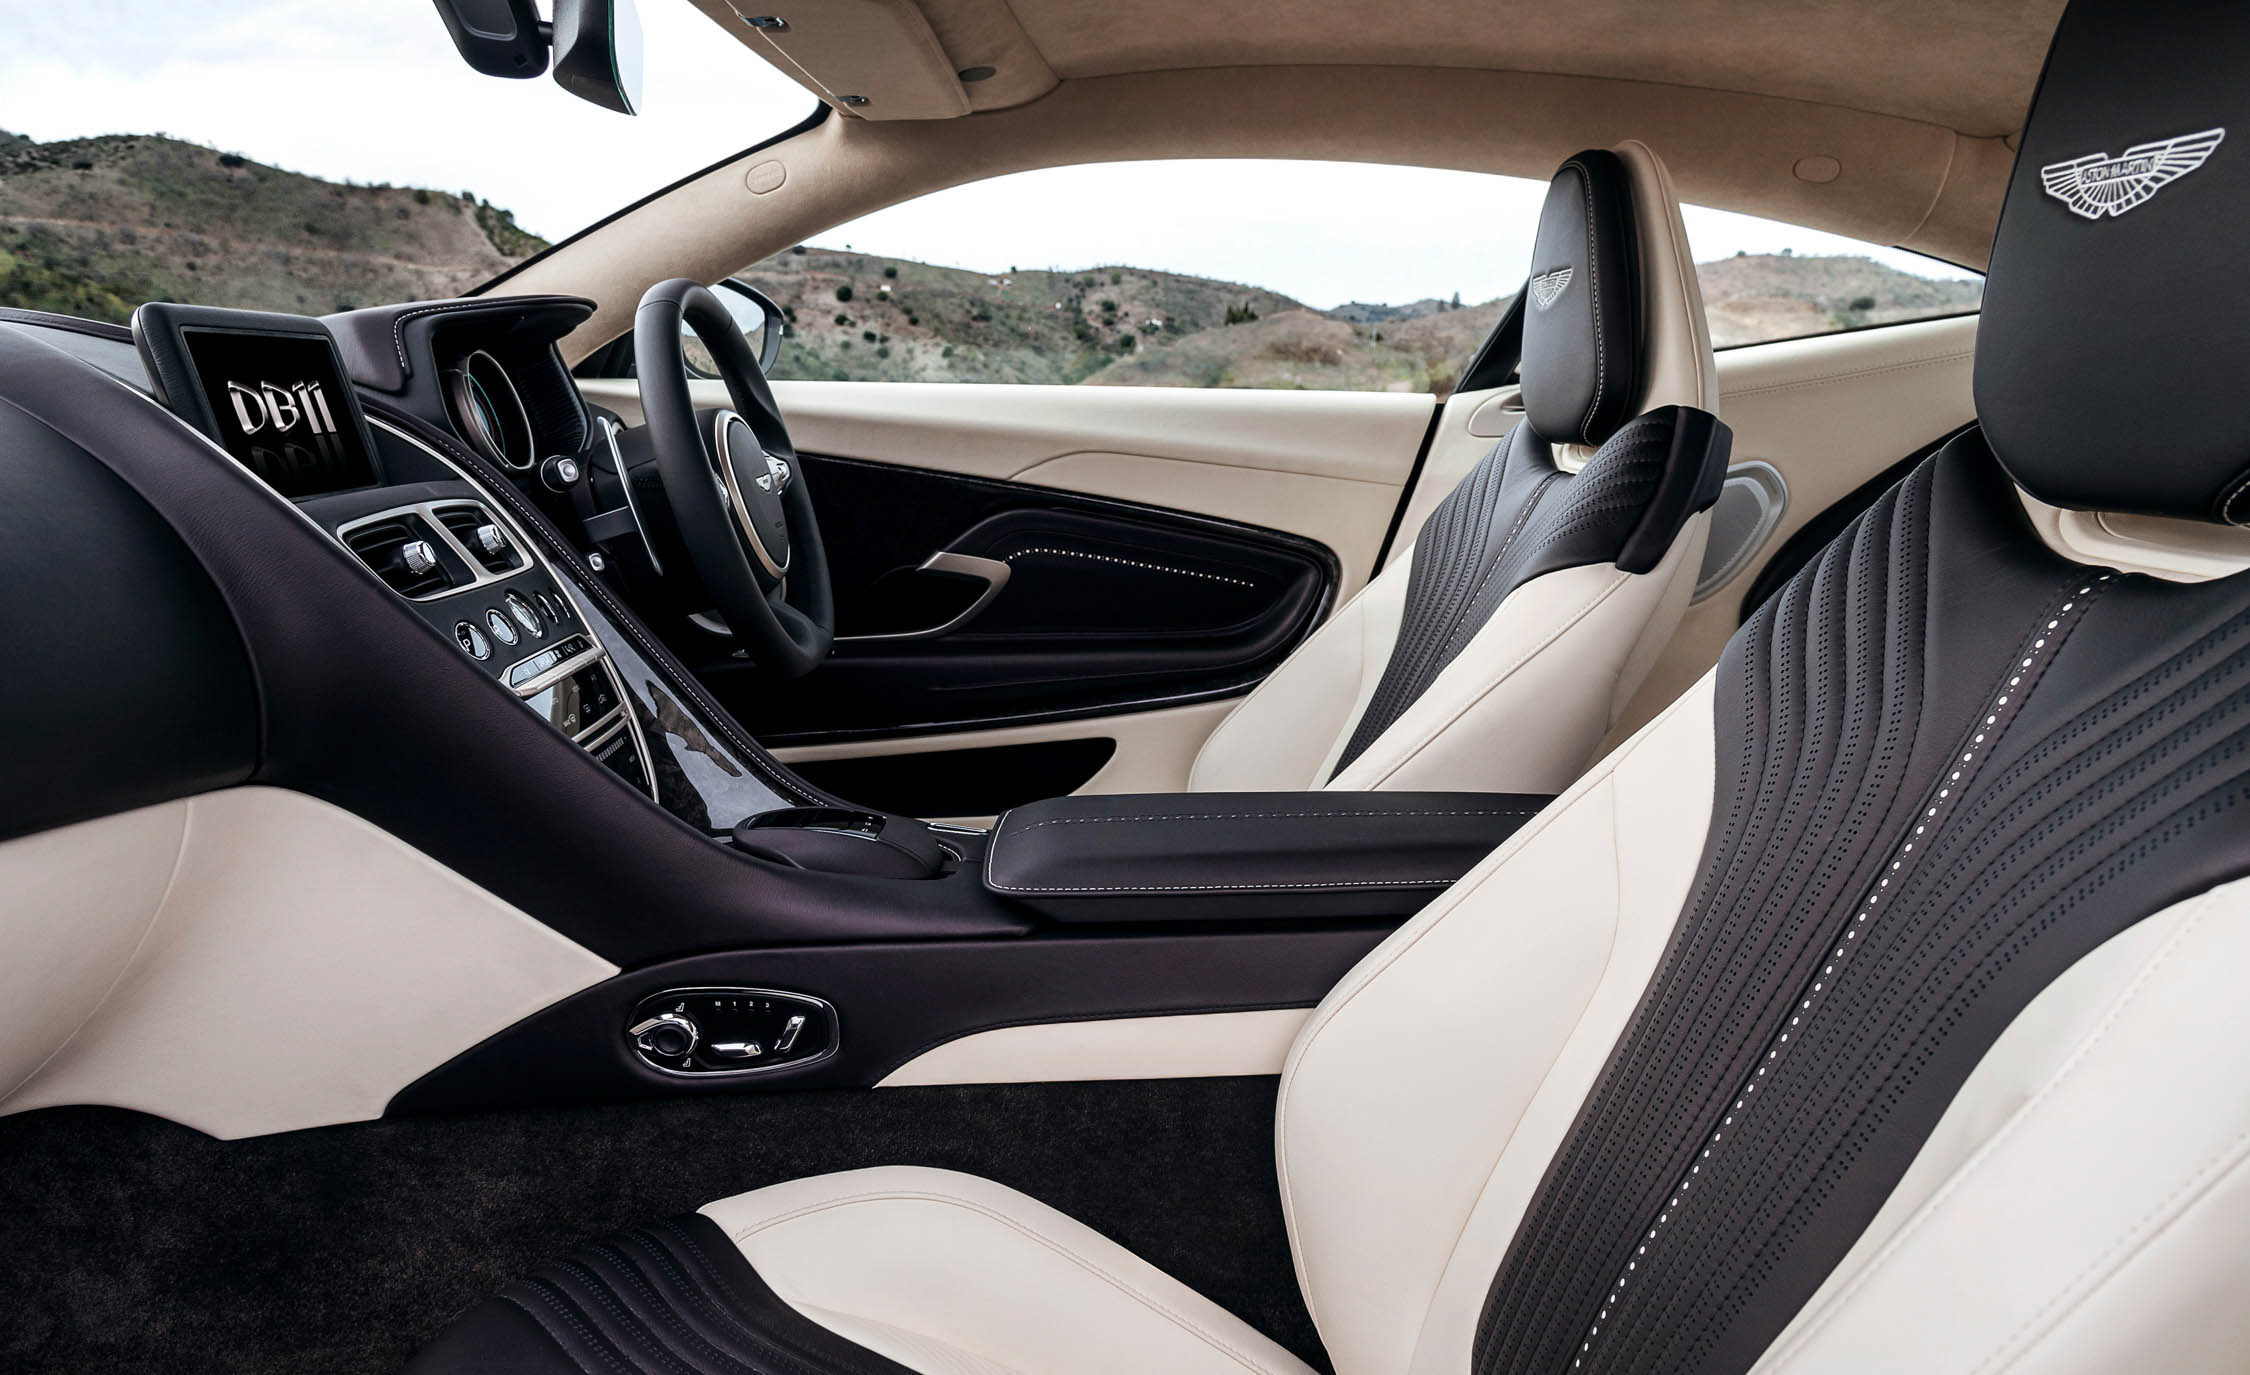 2017 Aston Martin Db11 Interior Seats (View 15 of 22)